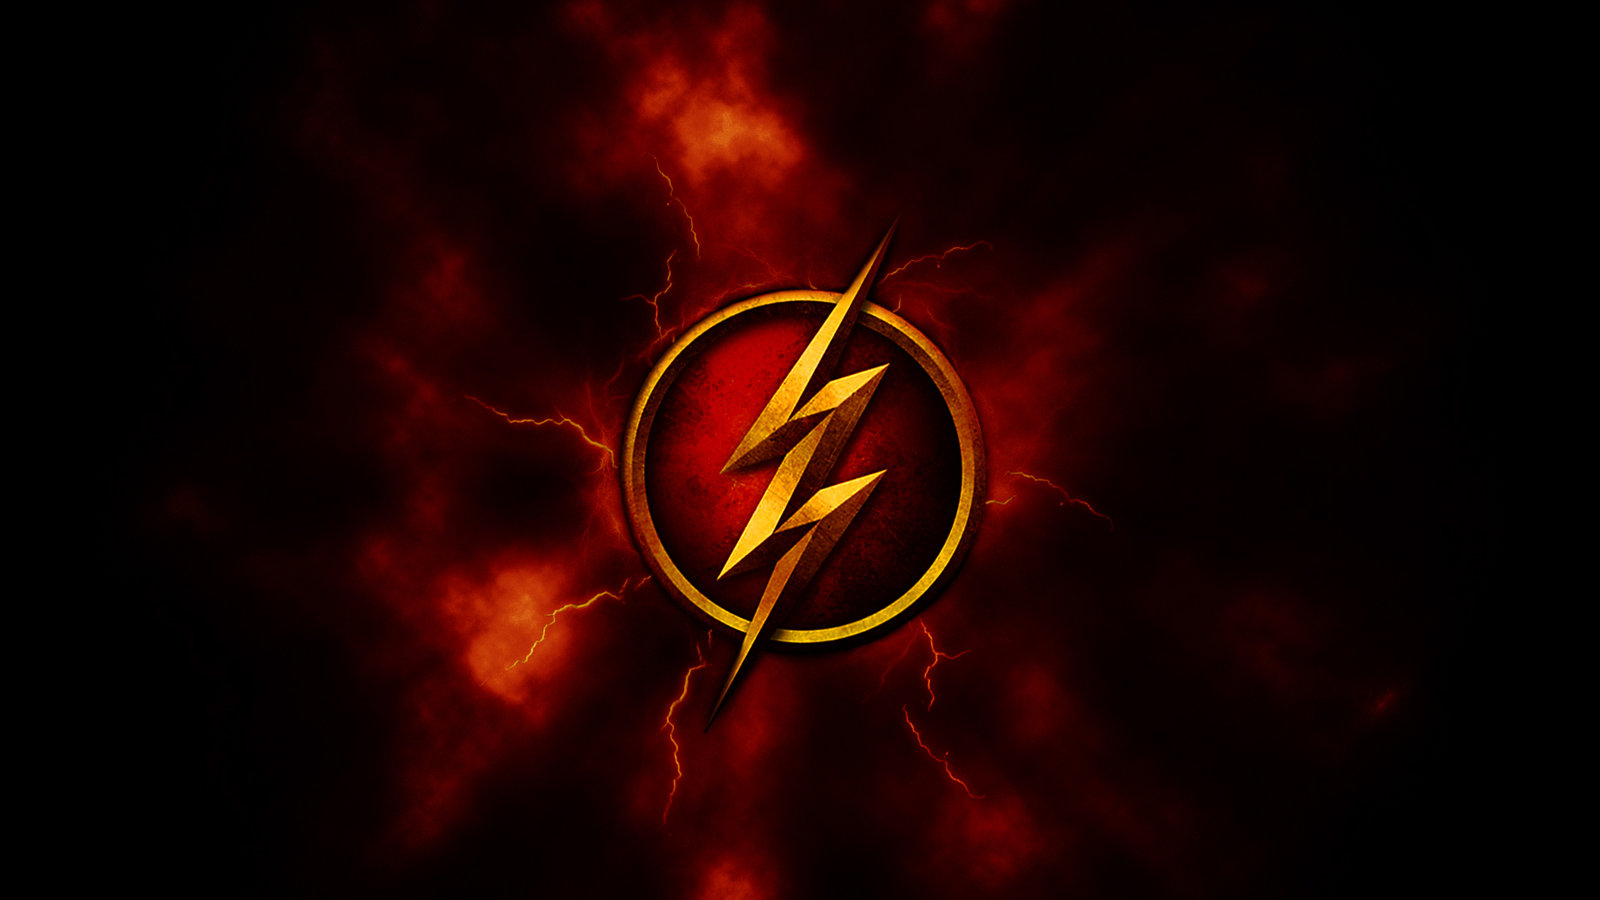 the flash logo wallpaper #11